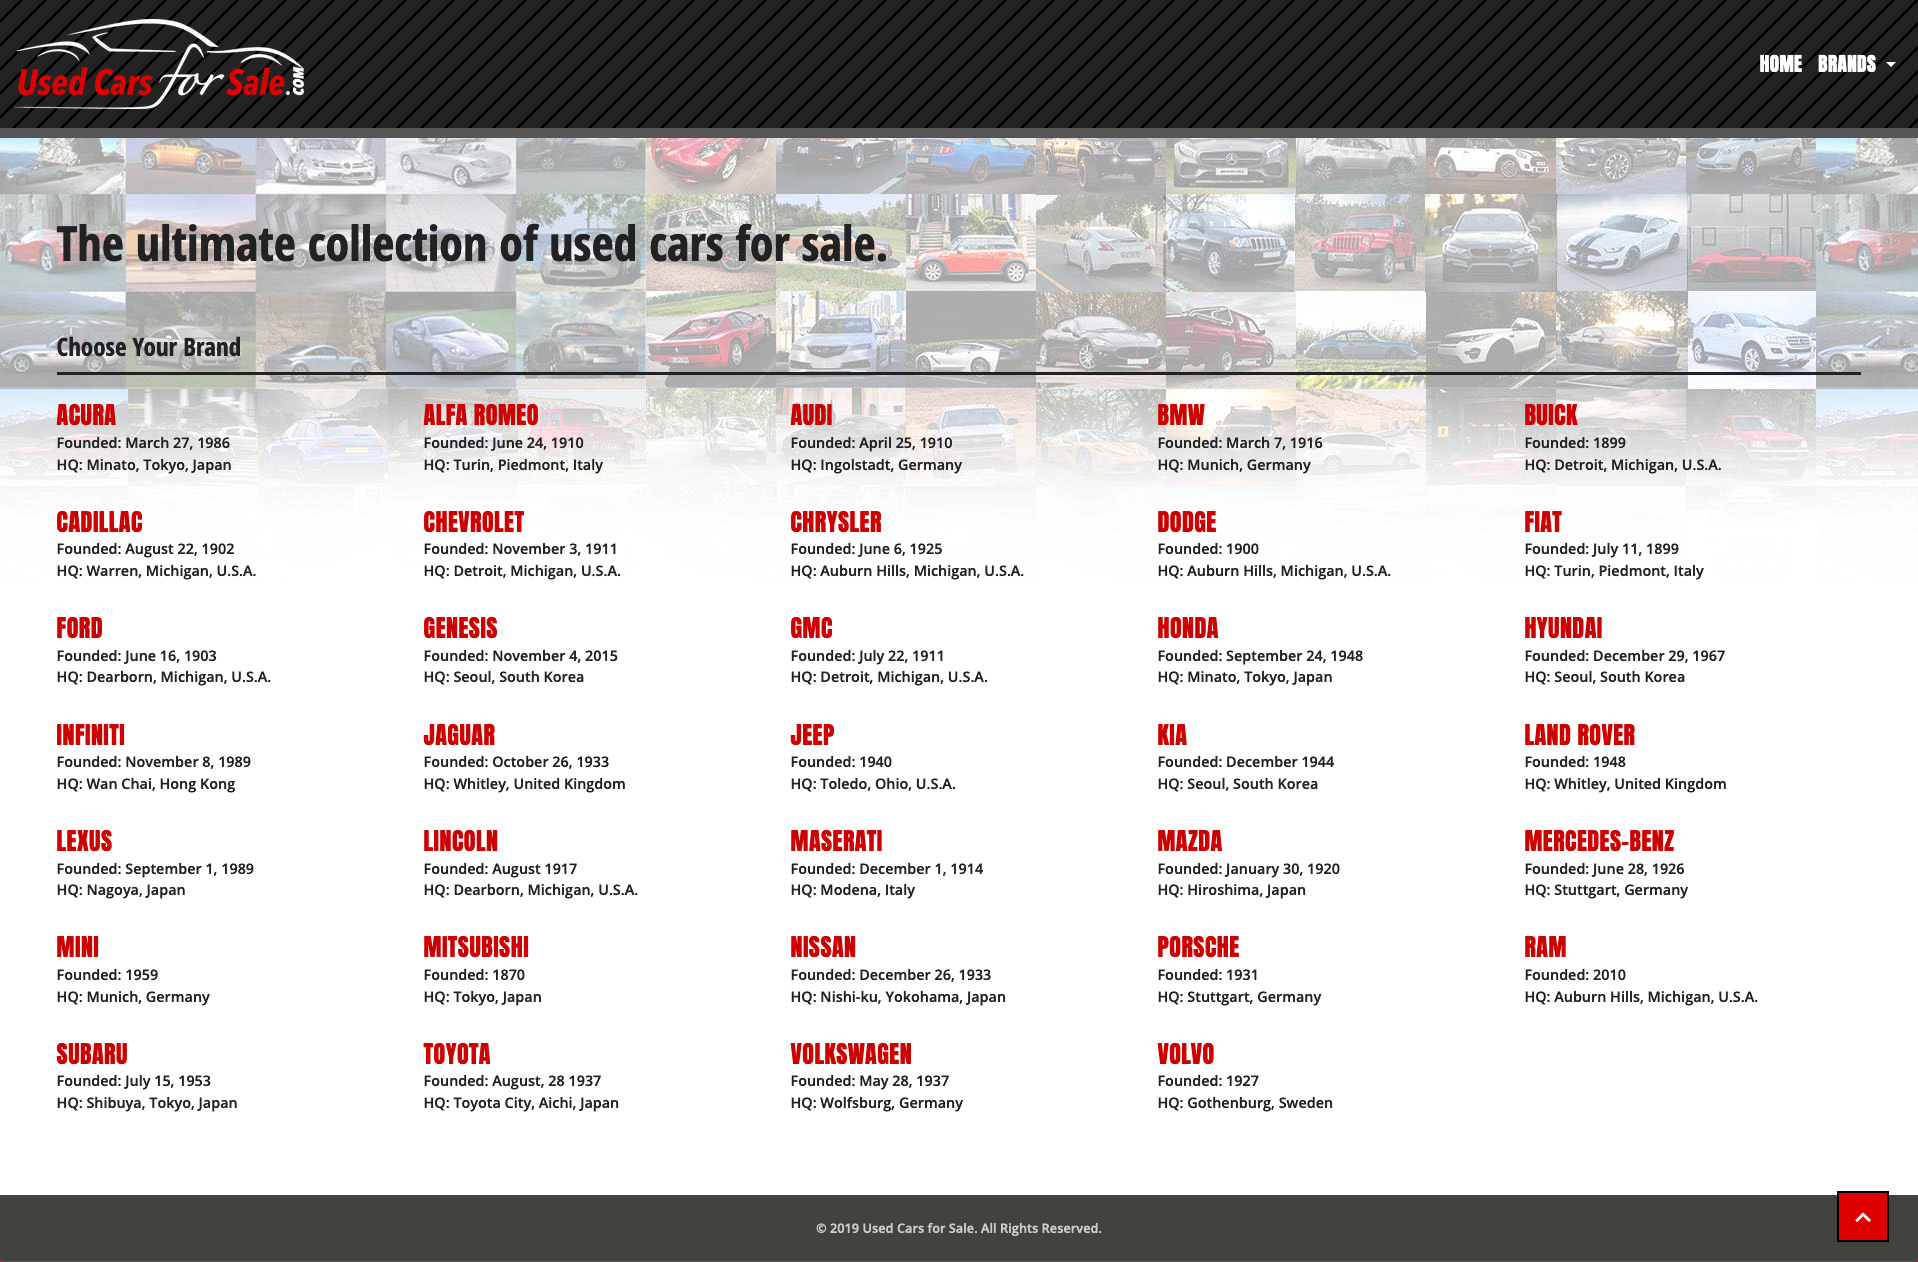 Home page for Used Cars for Sale